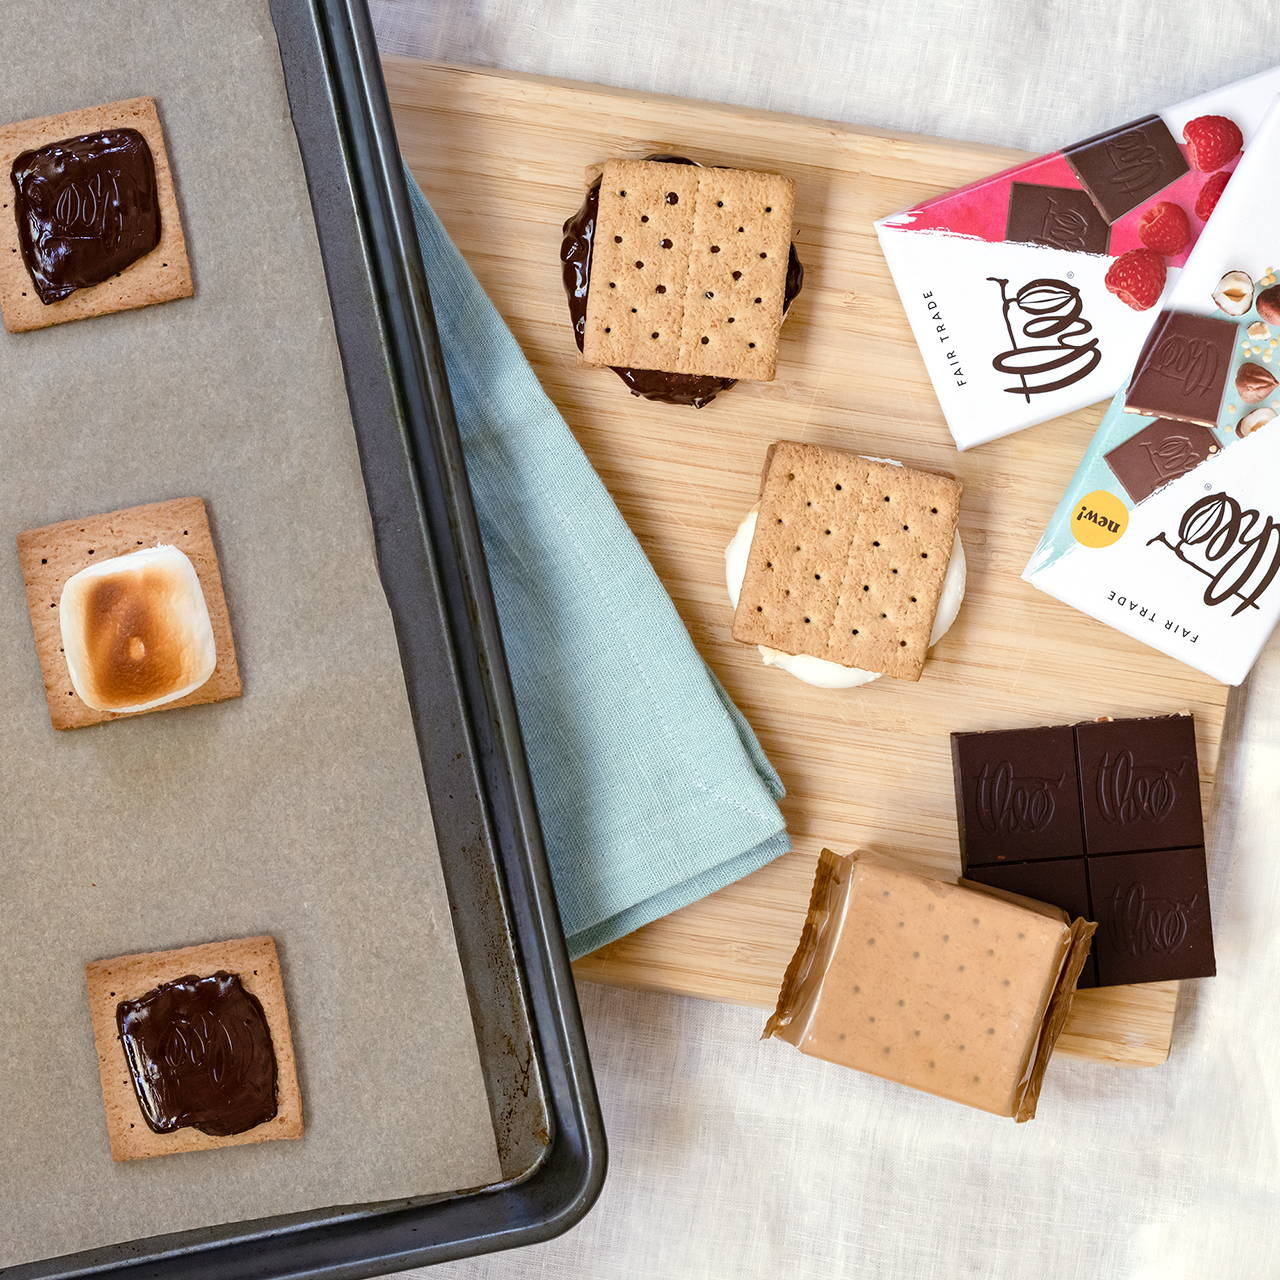 Baking tray fresh from the oven with toasted marshmallows and melted chocolate on graham crackers for oven-baked s'mores next to assembled s'mores on a cutting board.